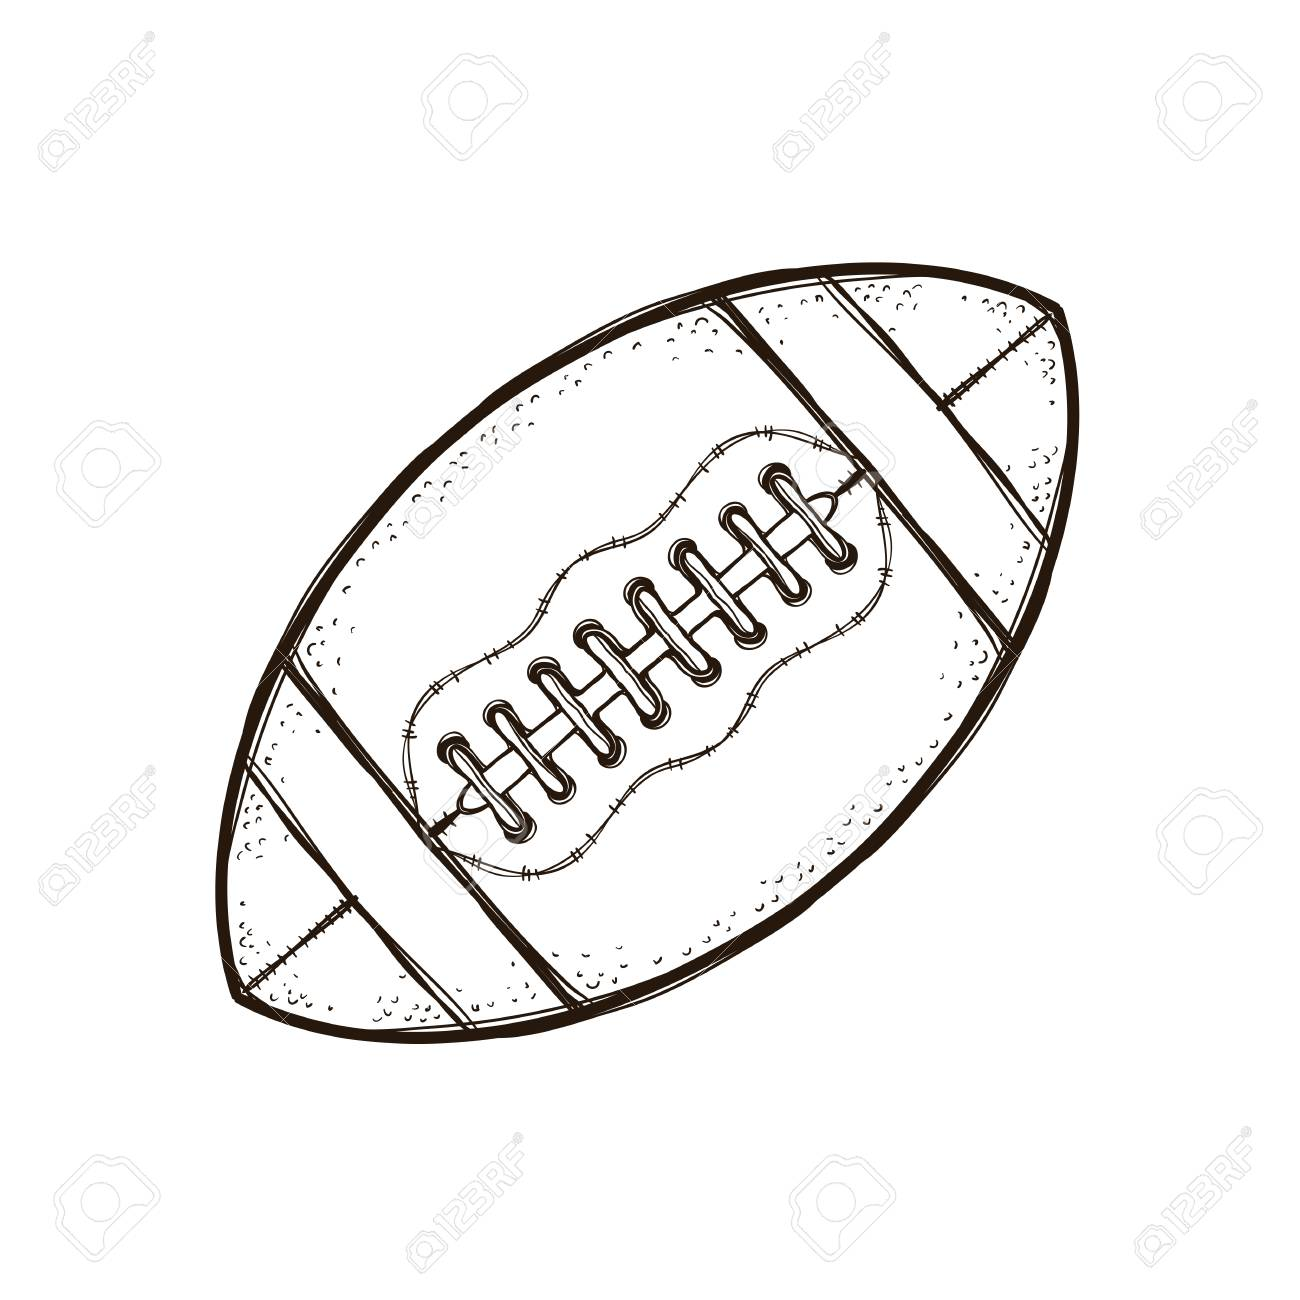 American Football Ball Isolated. Coloring Book Lizenzfreie Fotos ...